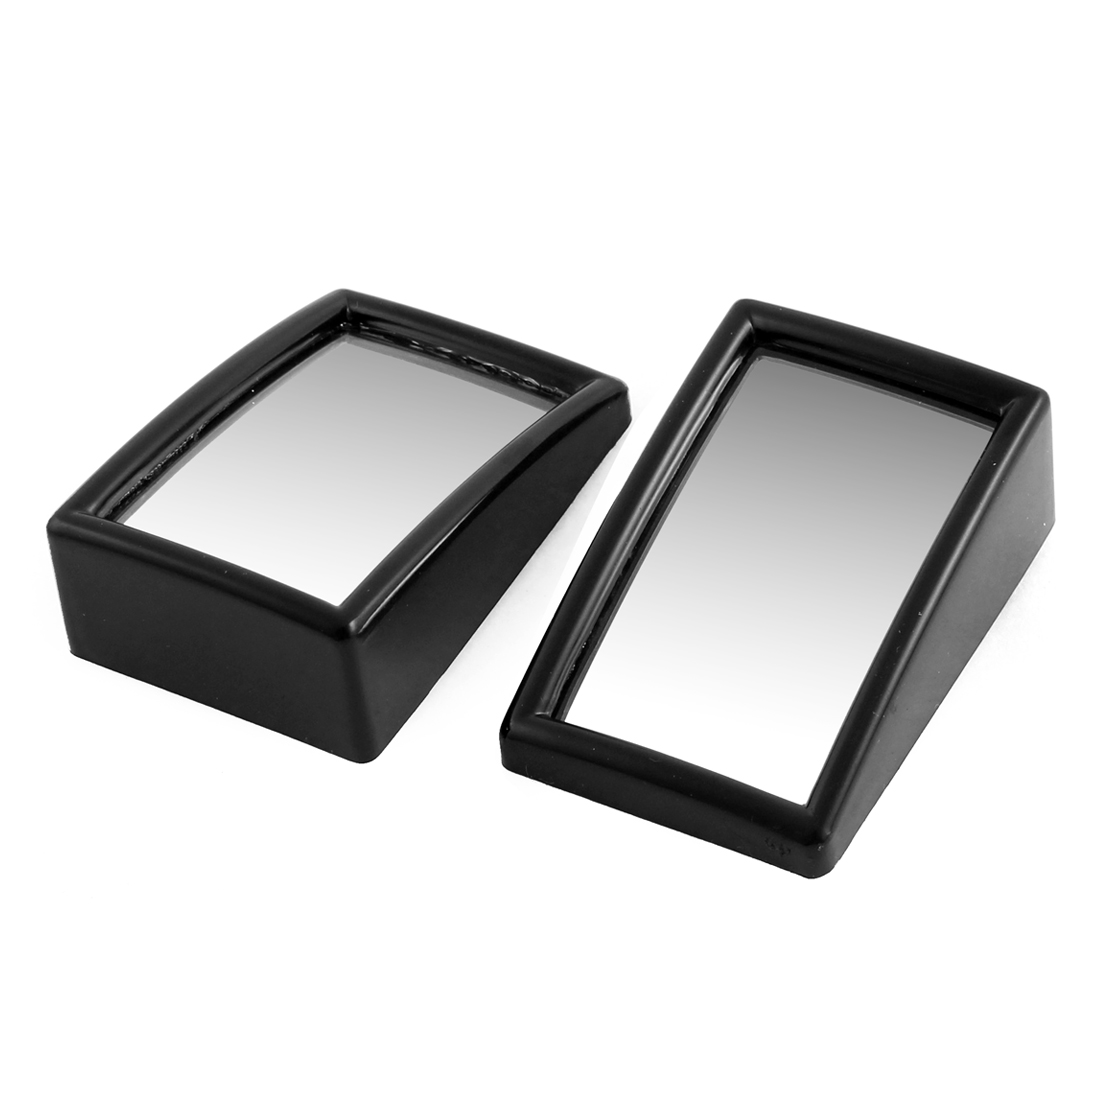 Pair Black Casing Wide Angle Convex Rearview Blind Spot Mirror for Car Vehicle